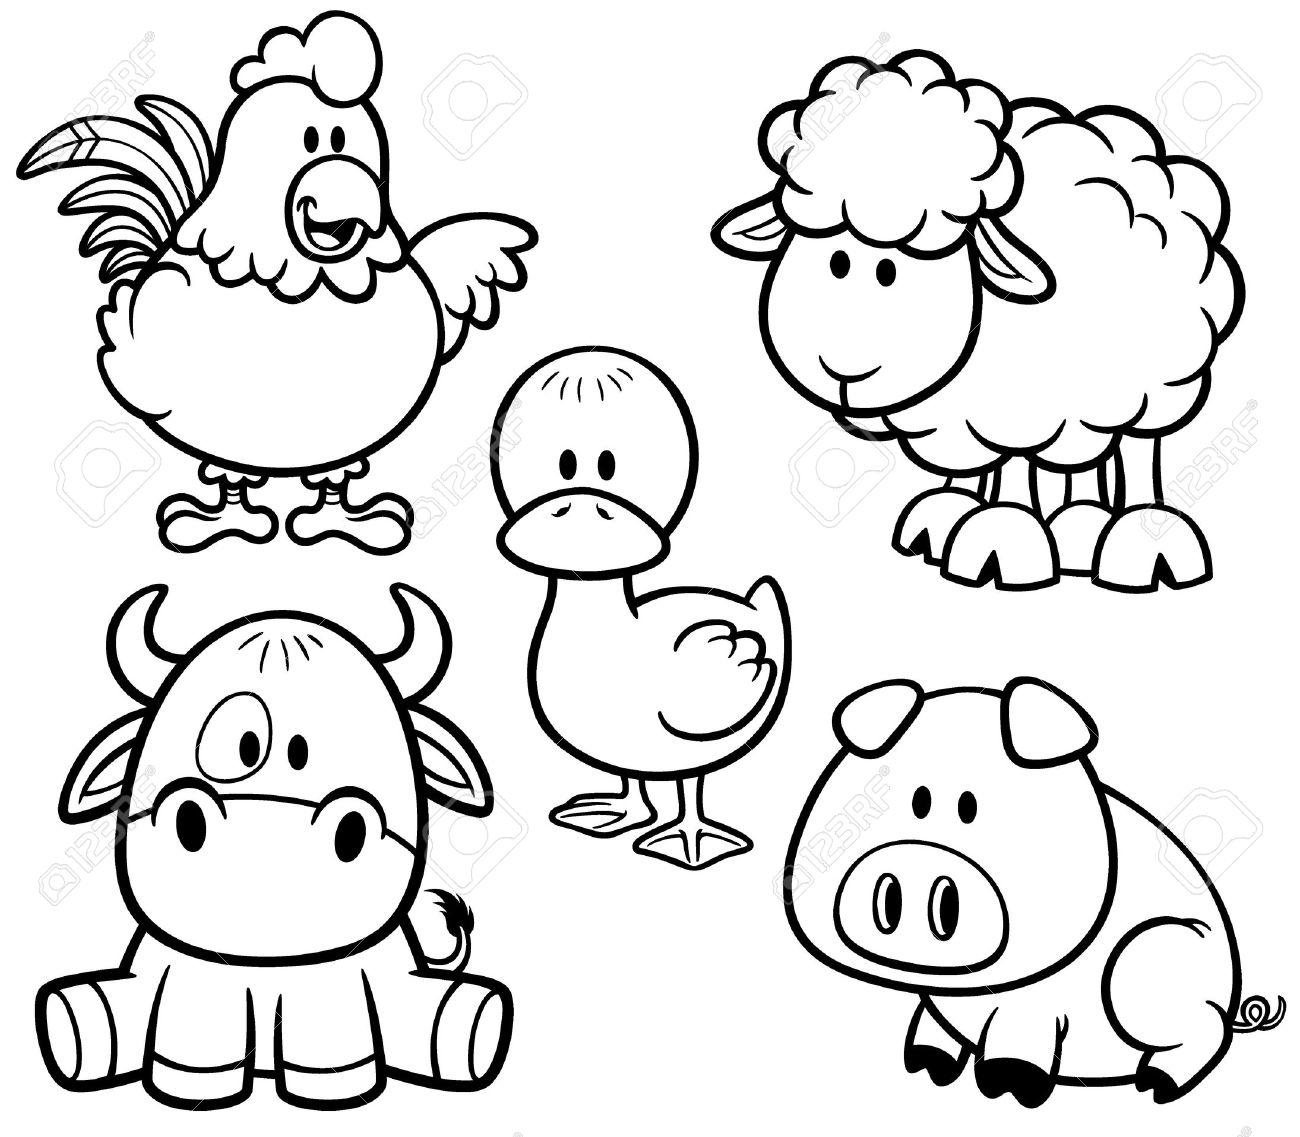 Cute Baby Farm Animal Coloring Pages ~ Best Coloring Pages ...